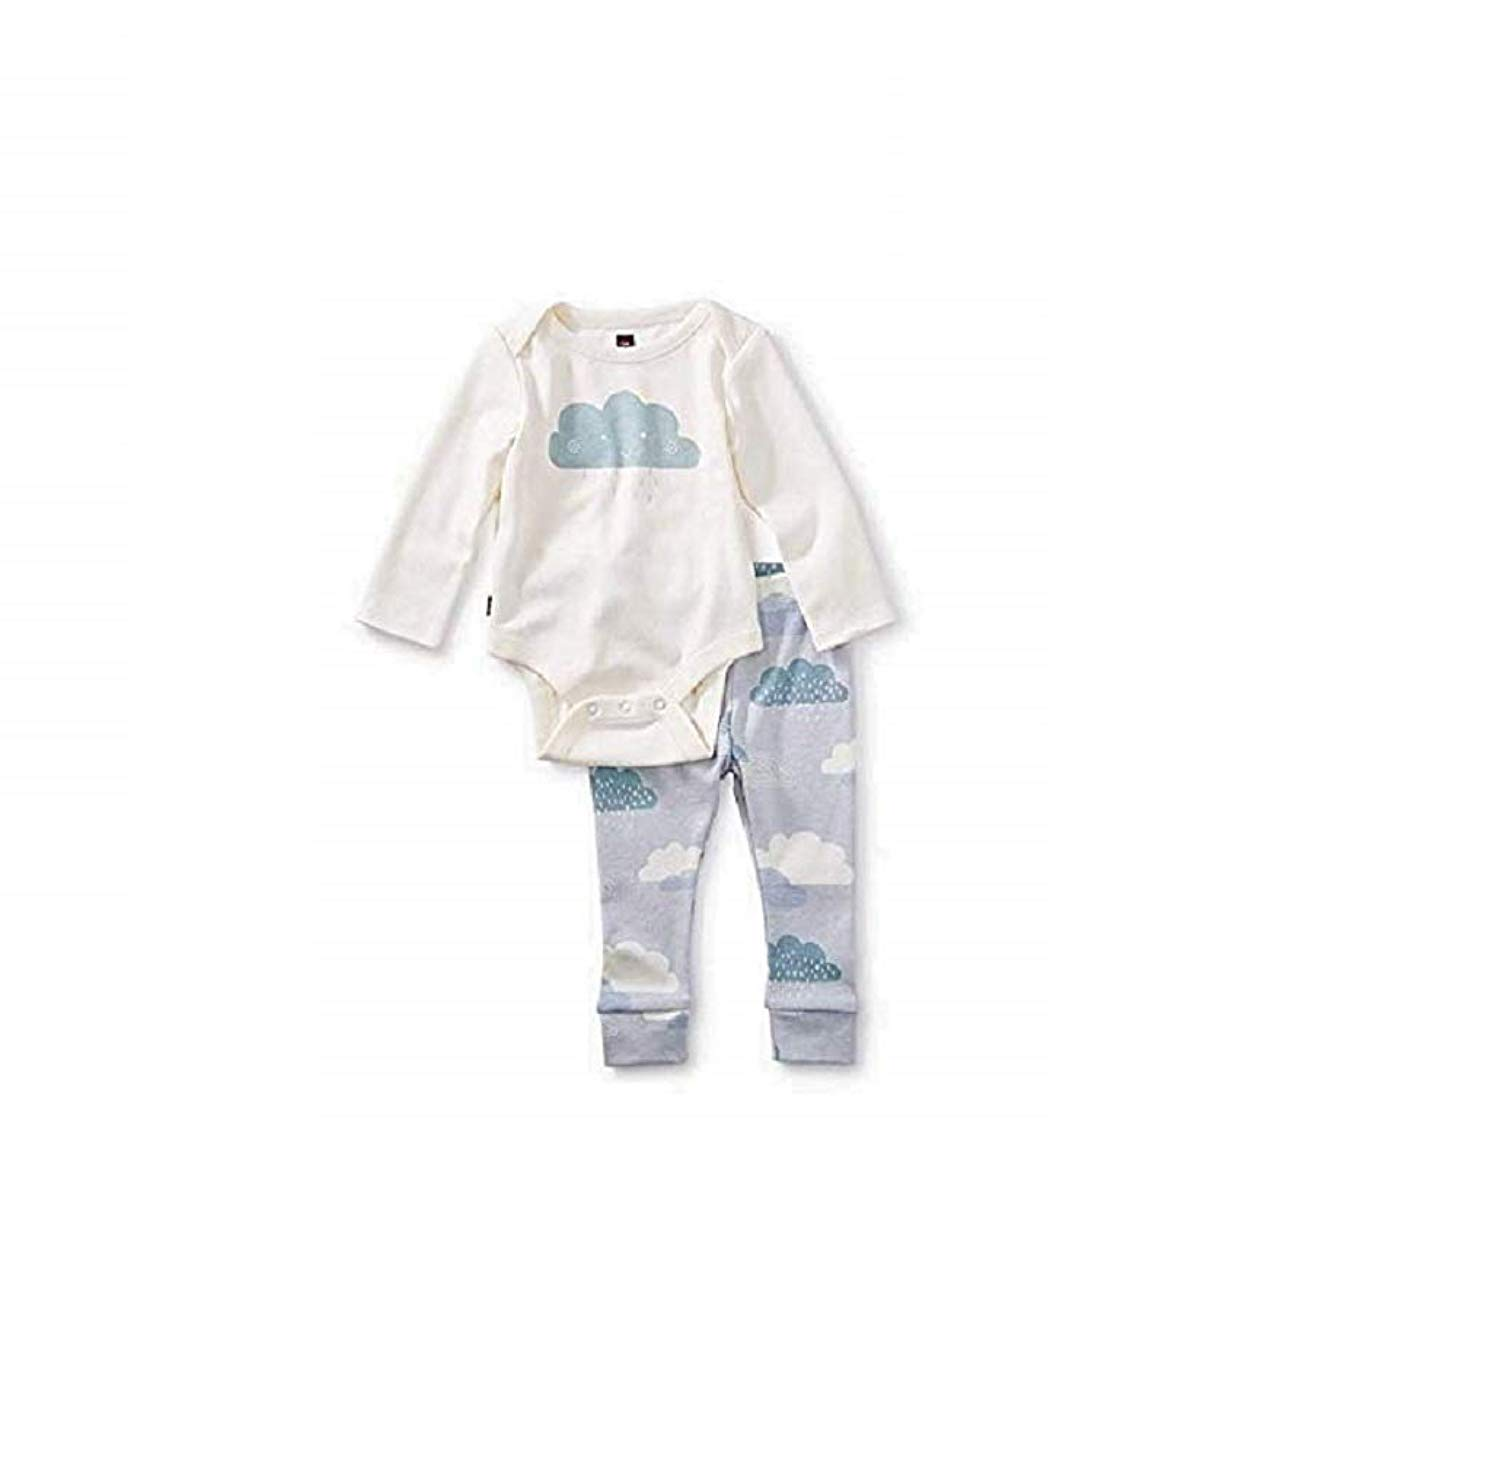 e2b5ba951 Get Quotations · Tea Collection 2-Piece Bodysuit Baby Outfit, Chalk, Cloud  Design with White Top